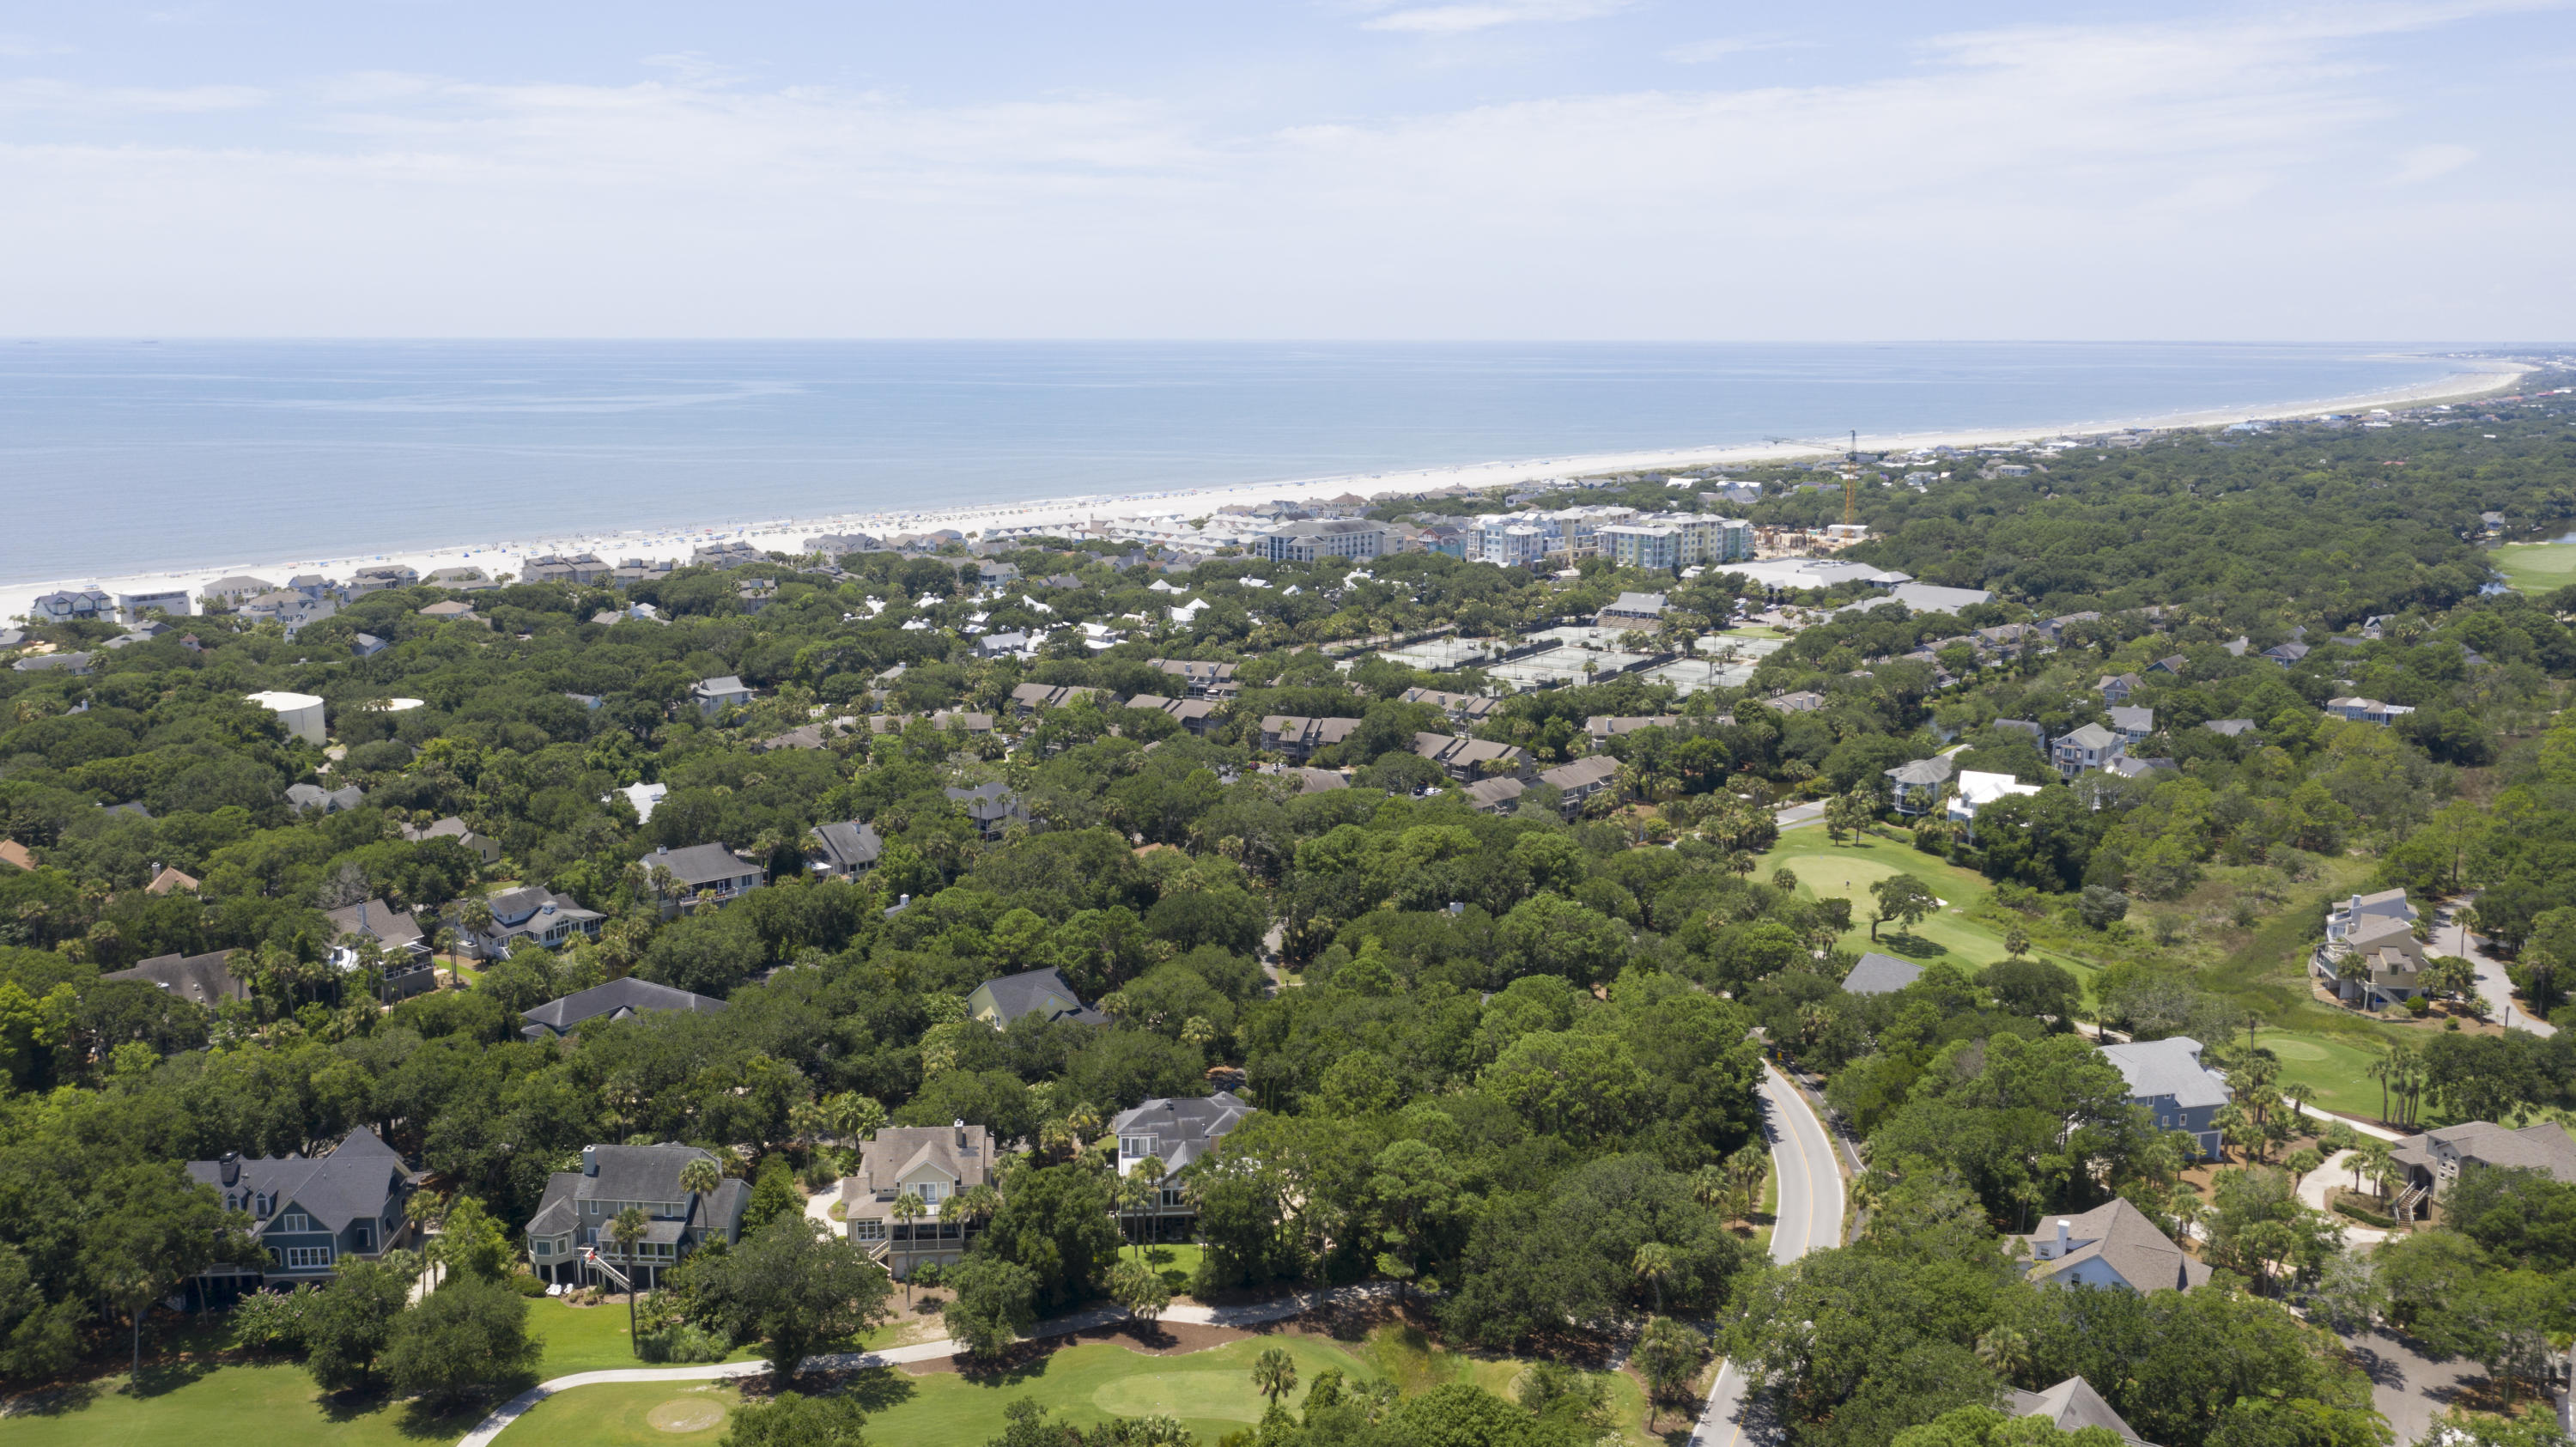 12 Sandwedge Lane Isle Of Palms, SC 29451